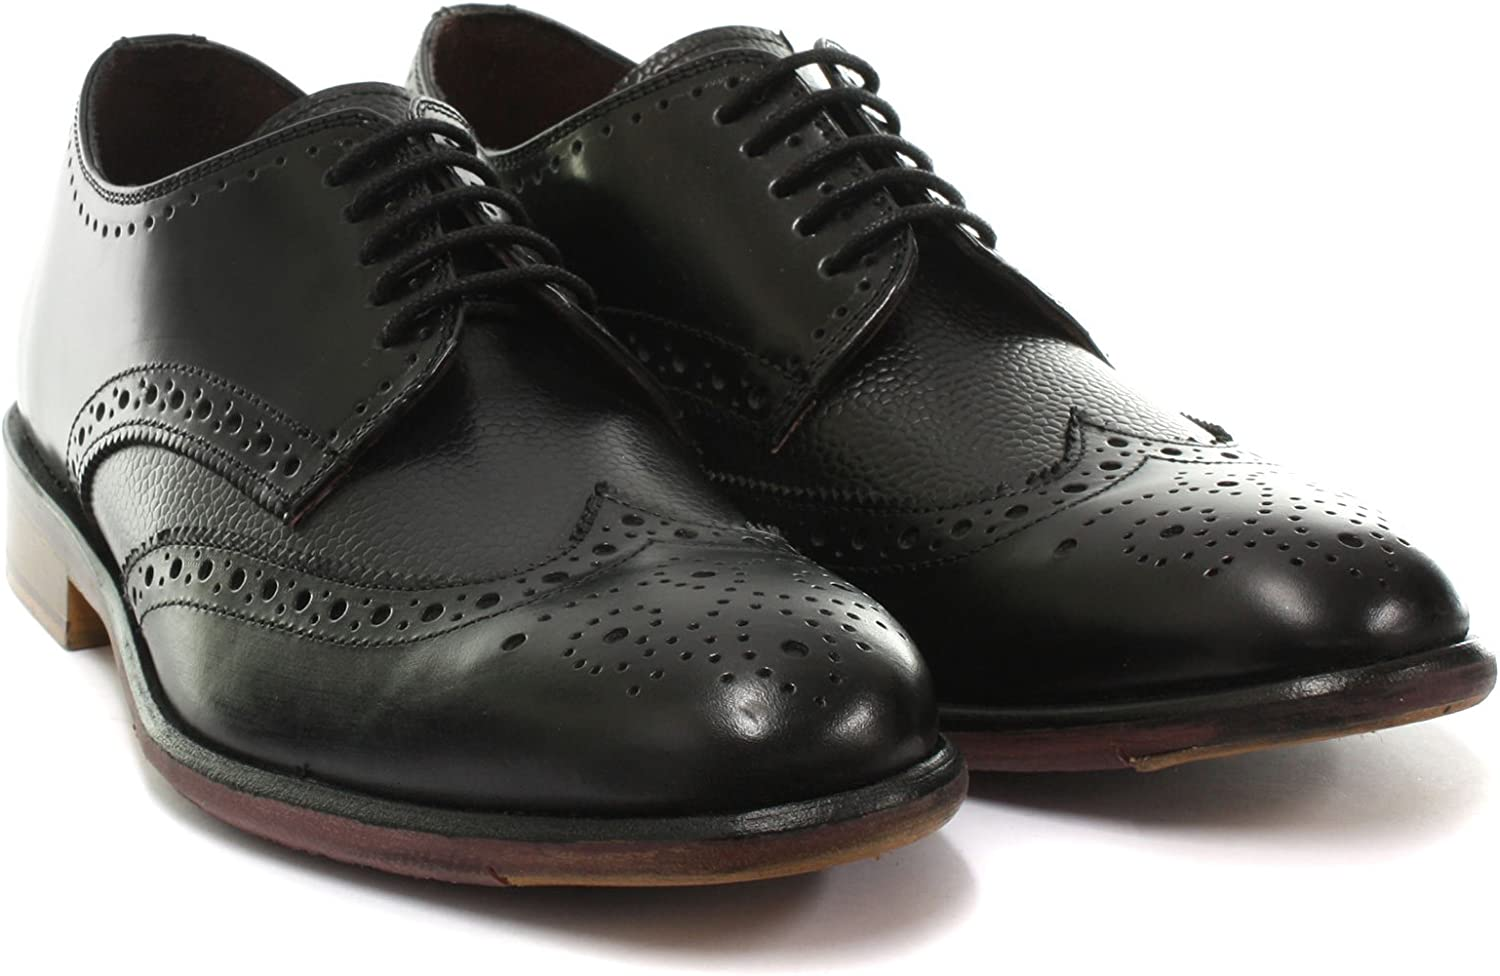 London Brogues Lincoln Derby Mens Leather Brogue Shoes